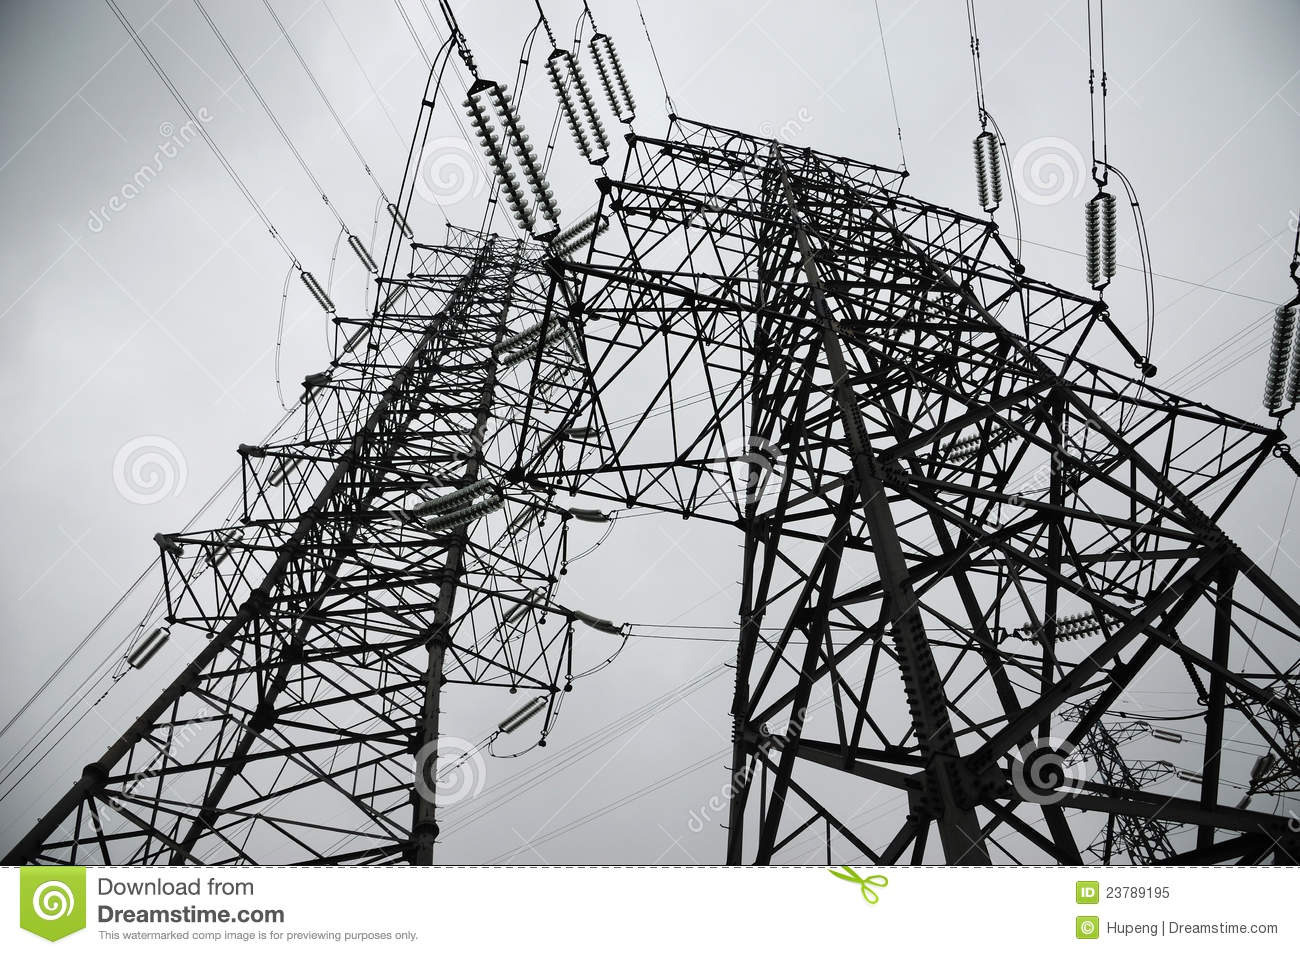 Power Lines In Black And White Stock Image - Image of architecture ...